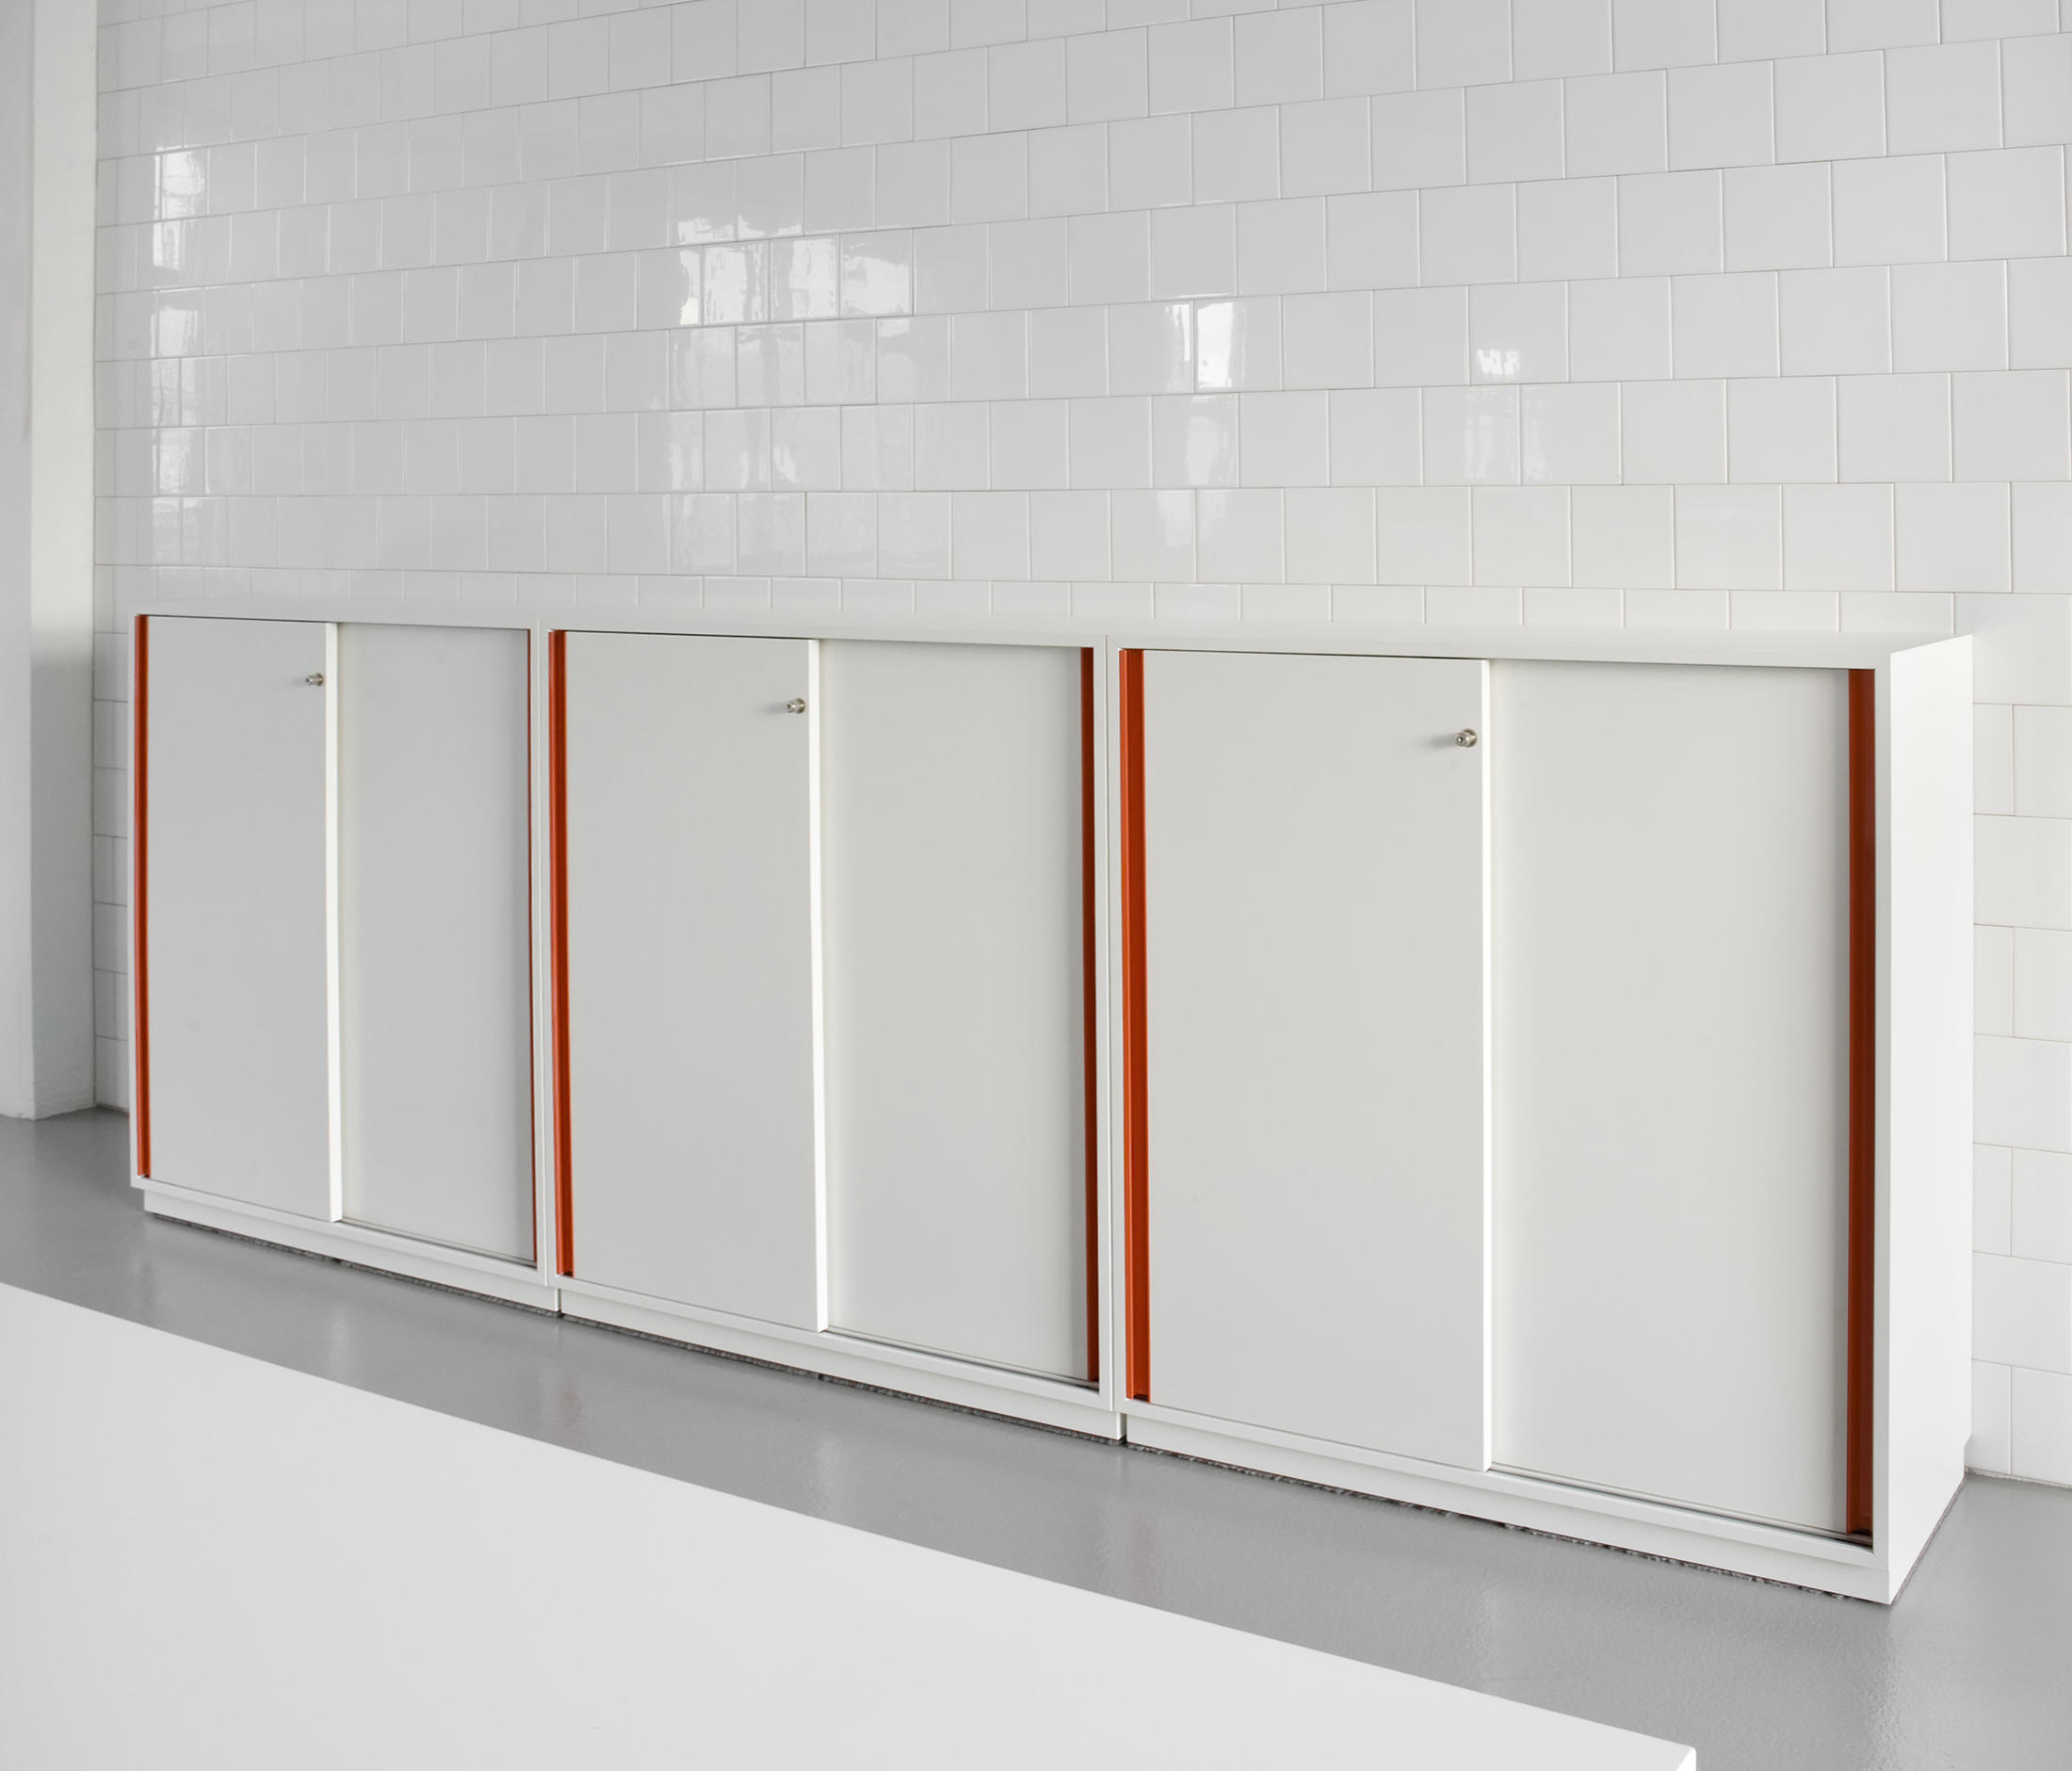 DO4500 Sliding door cabinet system by Designoffice | Cabinets ... & DO4500 SLIDING DOOR CABINET SYSTEM - Cabinets from Designoffice ...